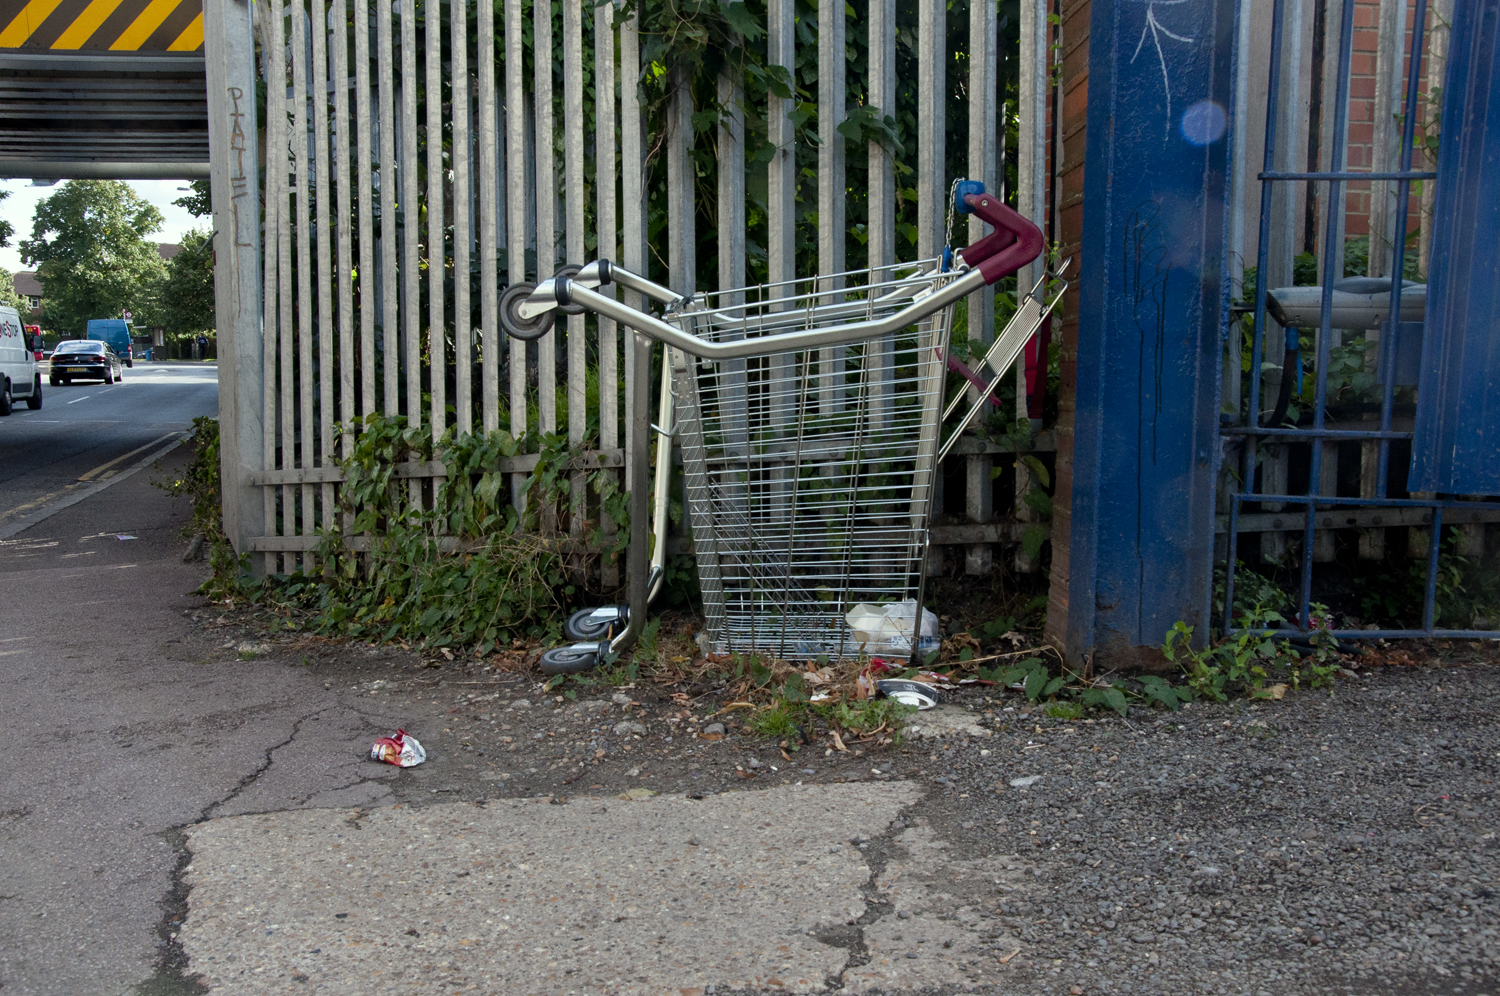 2014-Discarded-Shopping-Cart_01.jpg